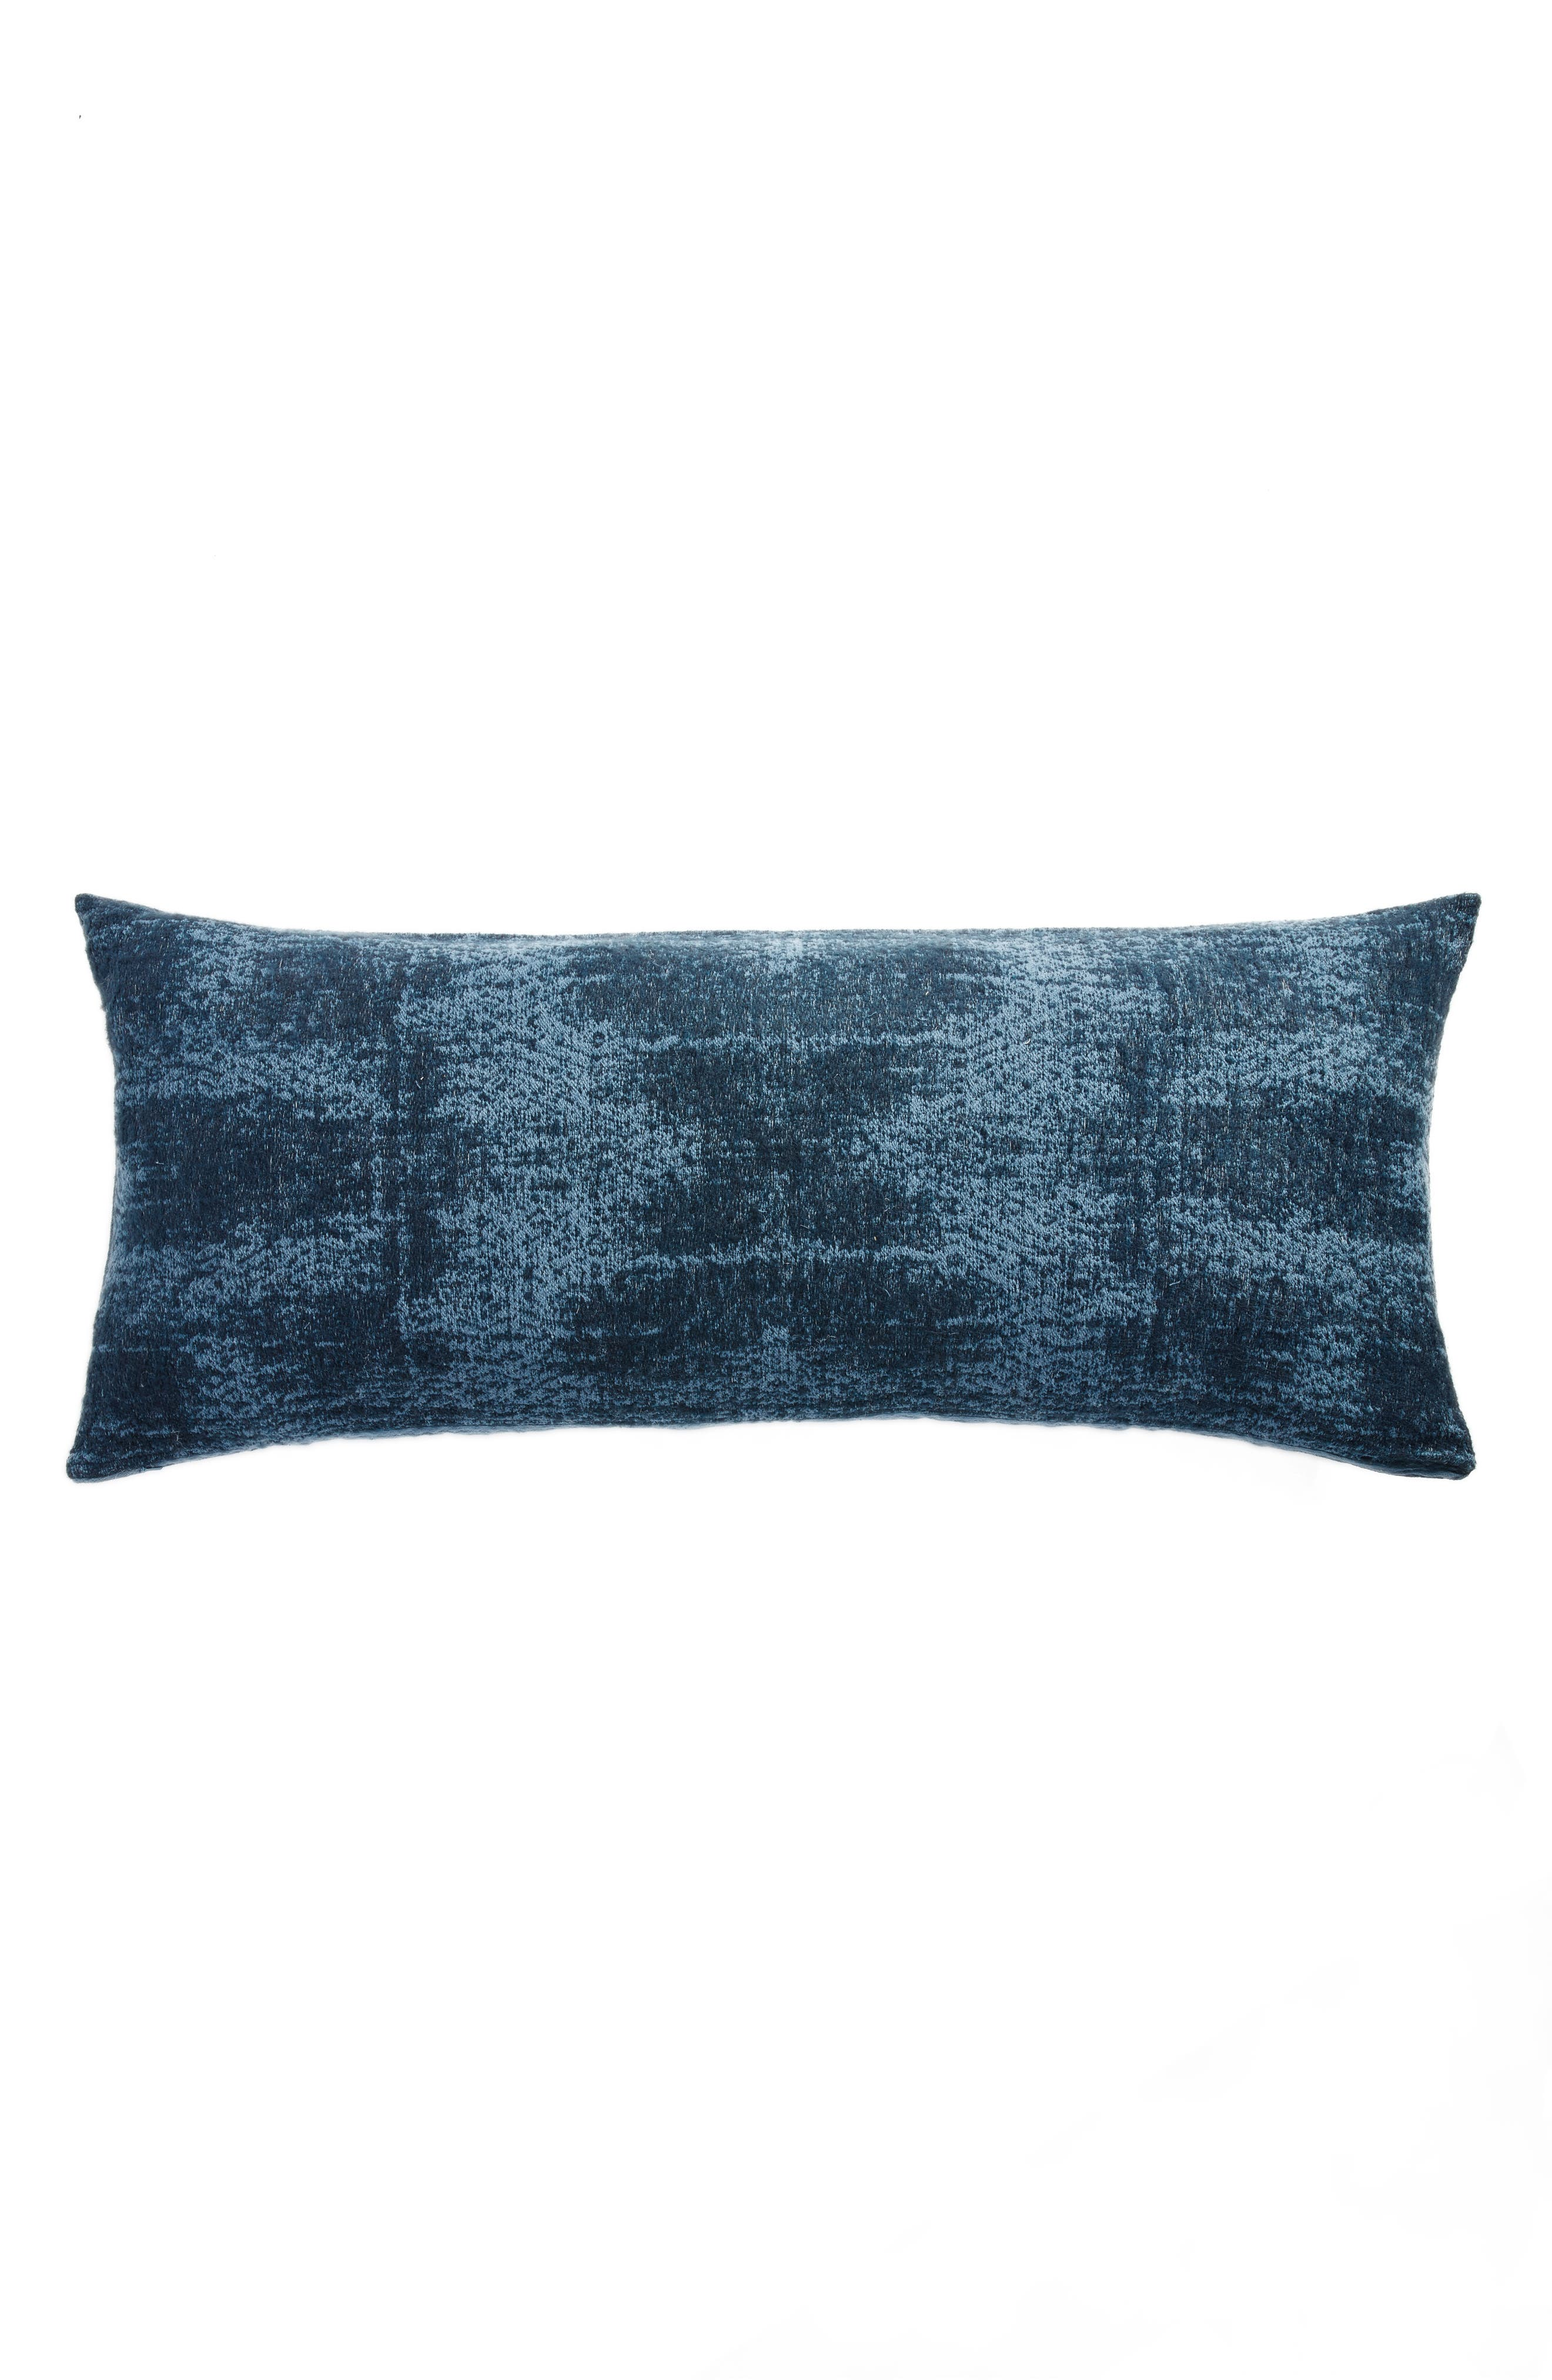 Distressed Geo Accent Pillow,                             Main thumbnail 1, color,                             BLUE MIRAGE